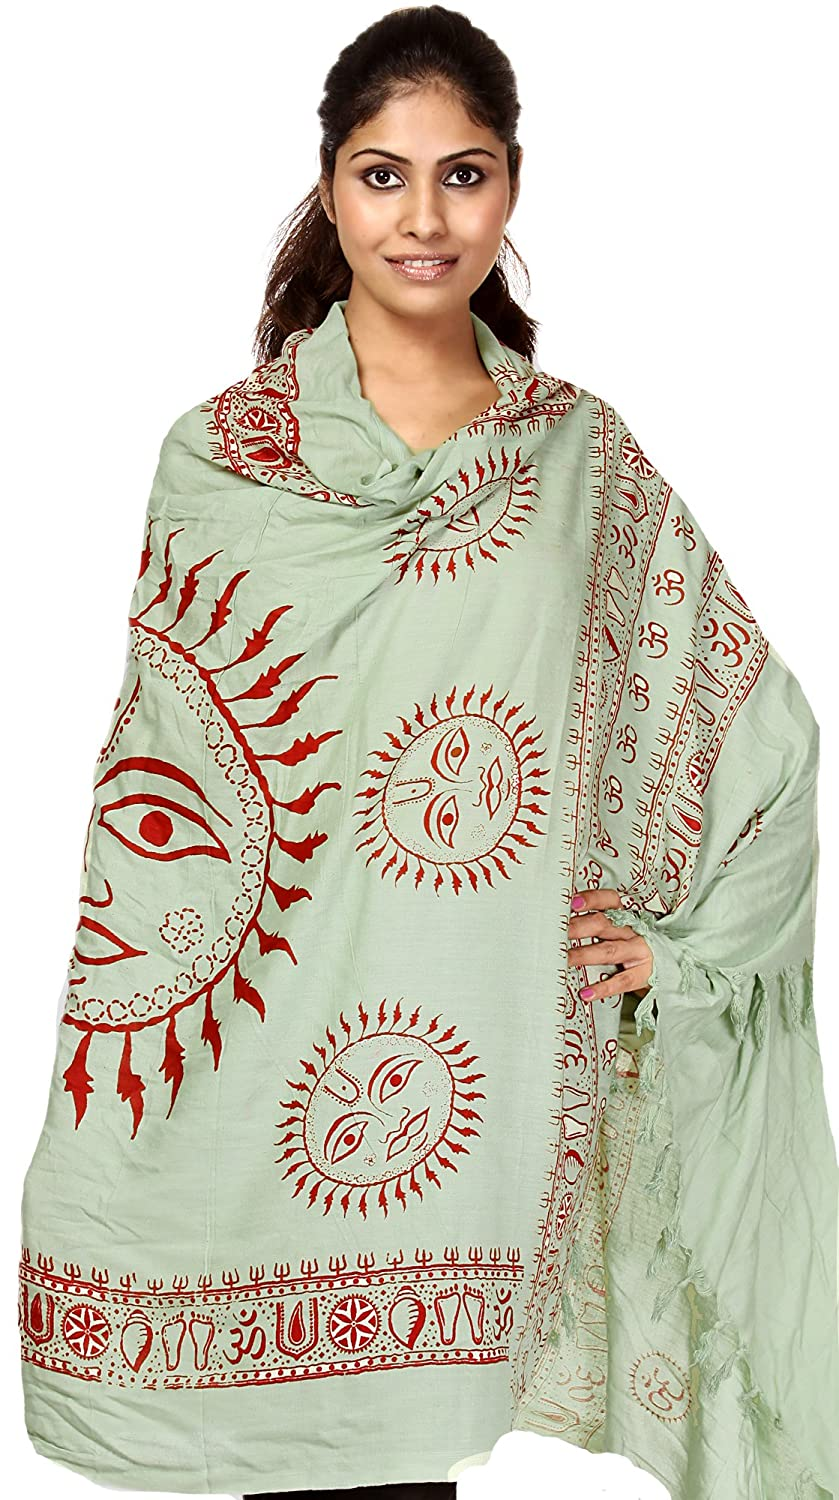 Exotic India Green Sanatana Dharma Prayer Shawl with Large Printed Surya (Sun) G SRB44